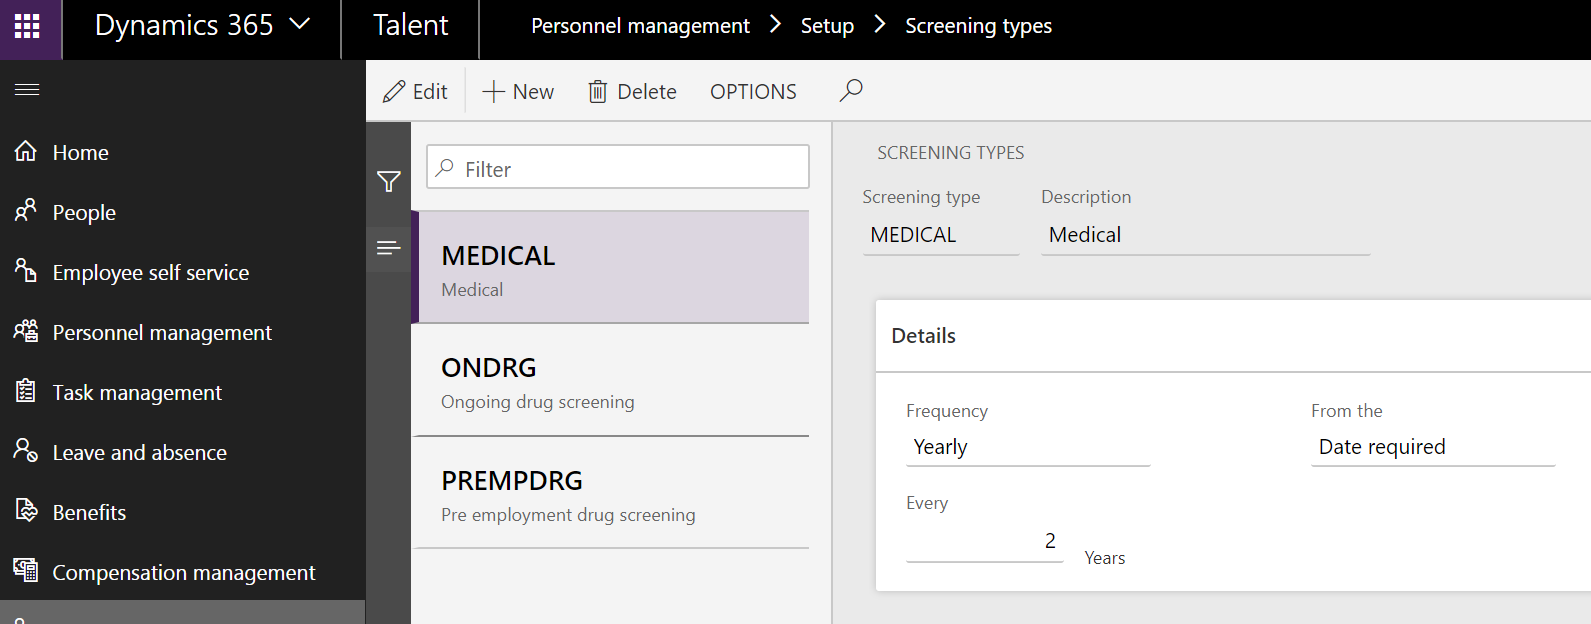 Screening types